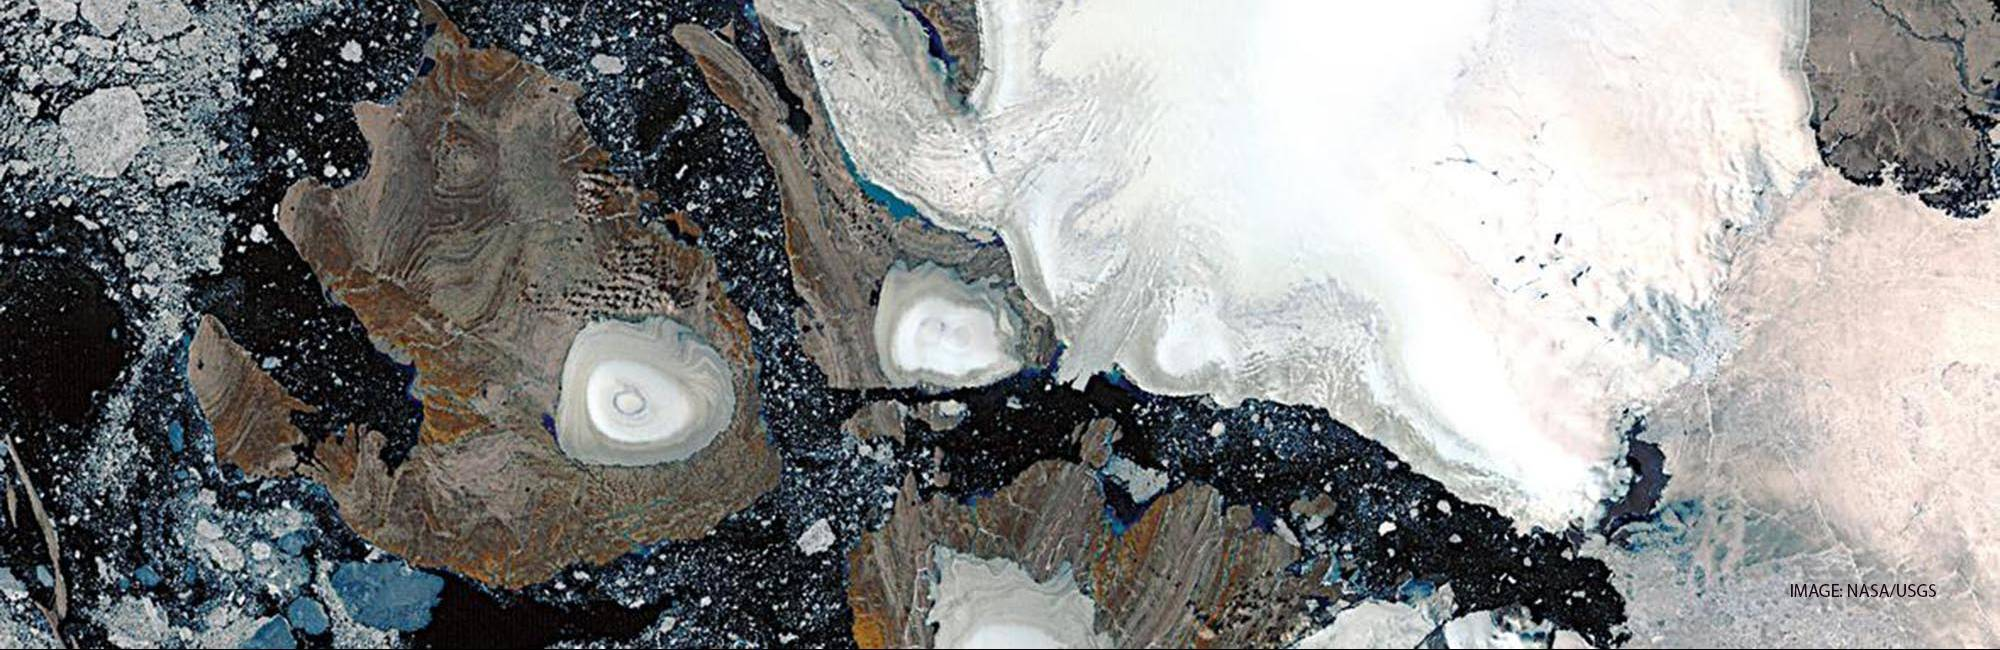 Landsat image of ice caps in northern Savernaya Zemlya, Russian Arctic Islands (80 degrees N.). The scene shows zones of melting on the ice caps. The largest ice cap is about 80 km across. Image courtesy of Julian Dowdeswell, Scott Polar Research Institute, Cambridge, UK.